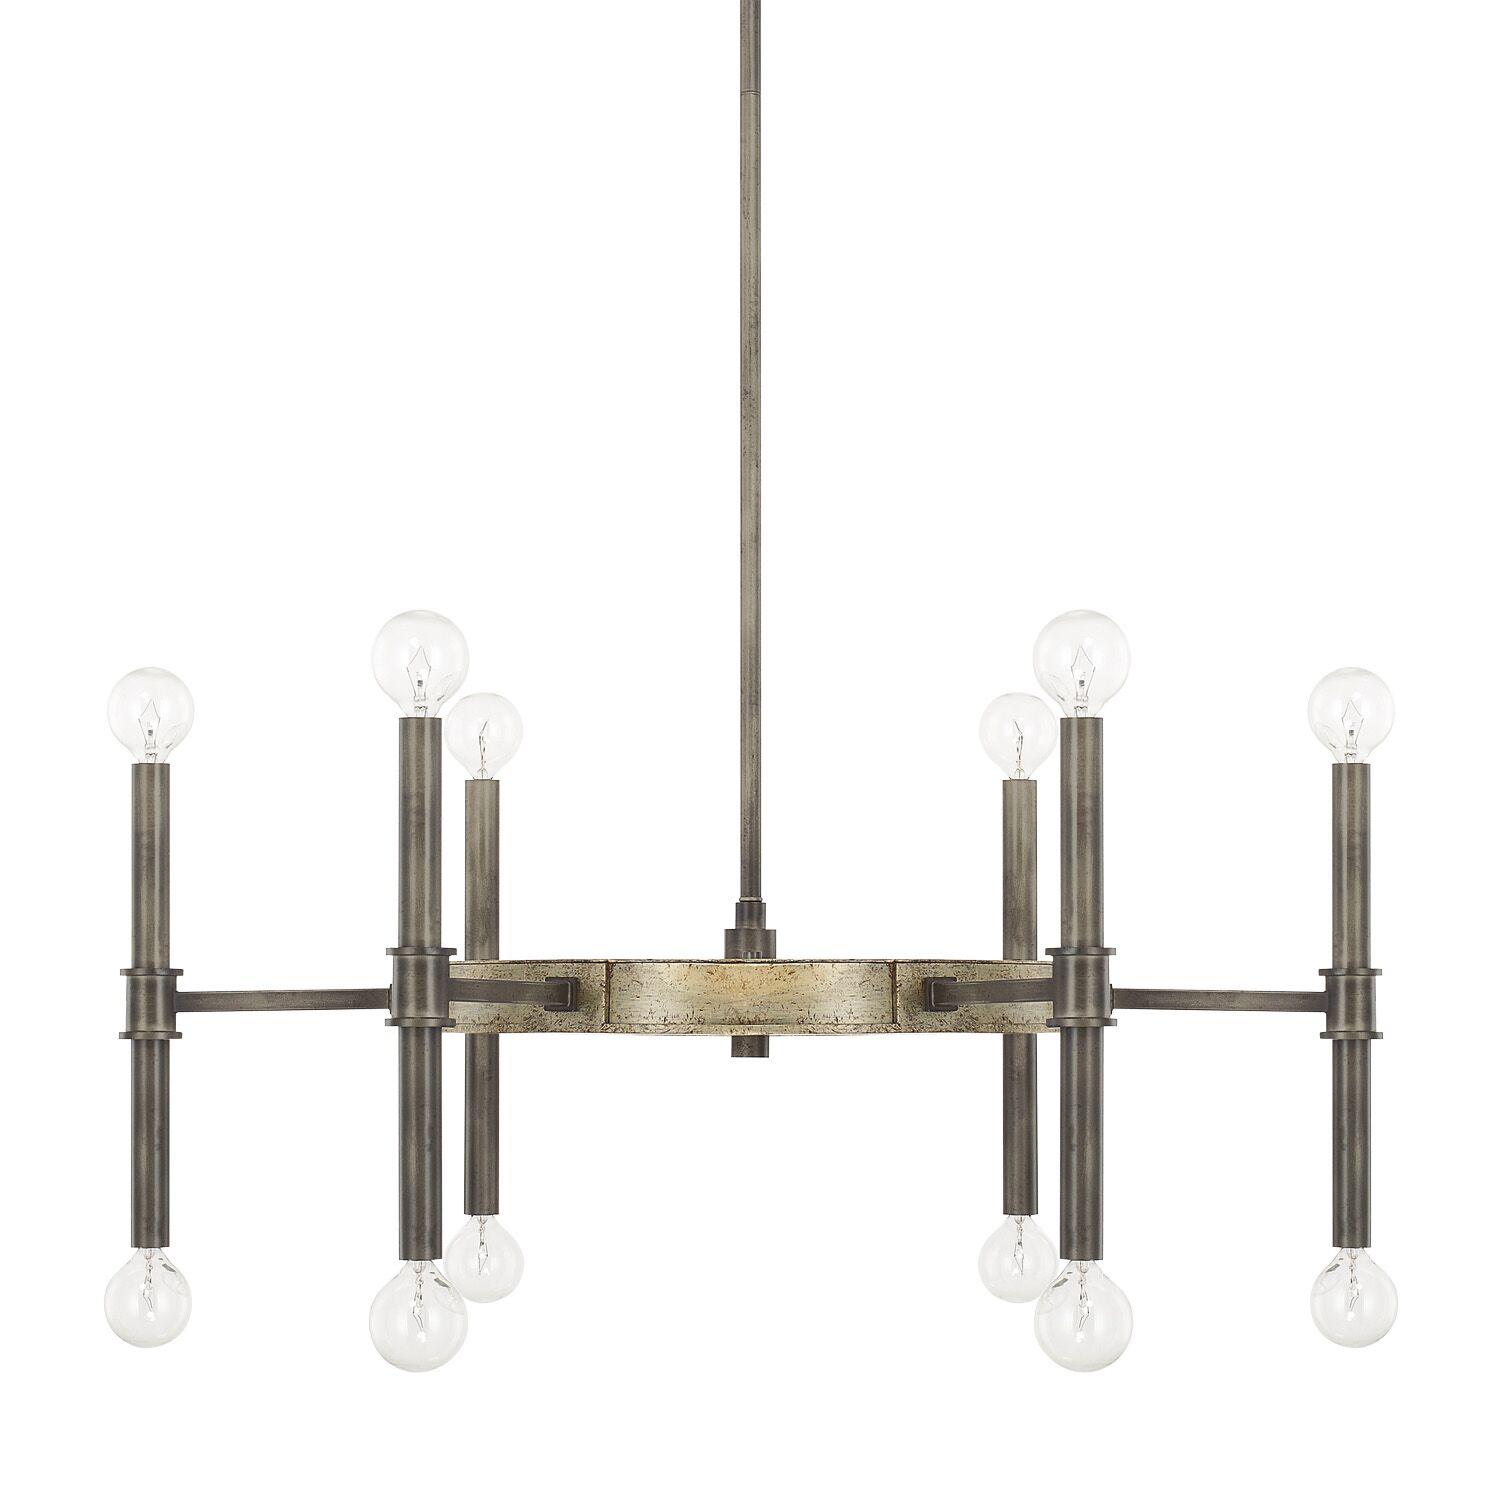 Deller 12-Light Wagon Wheel Chandelier Size: 18.5